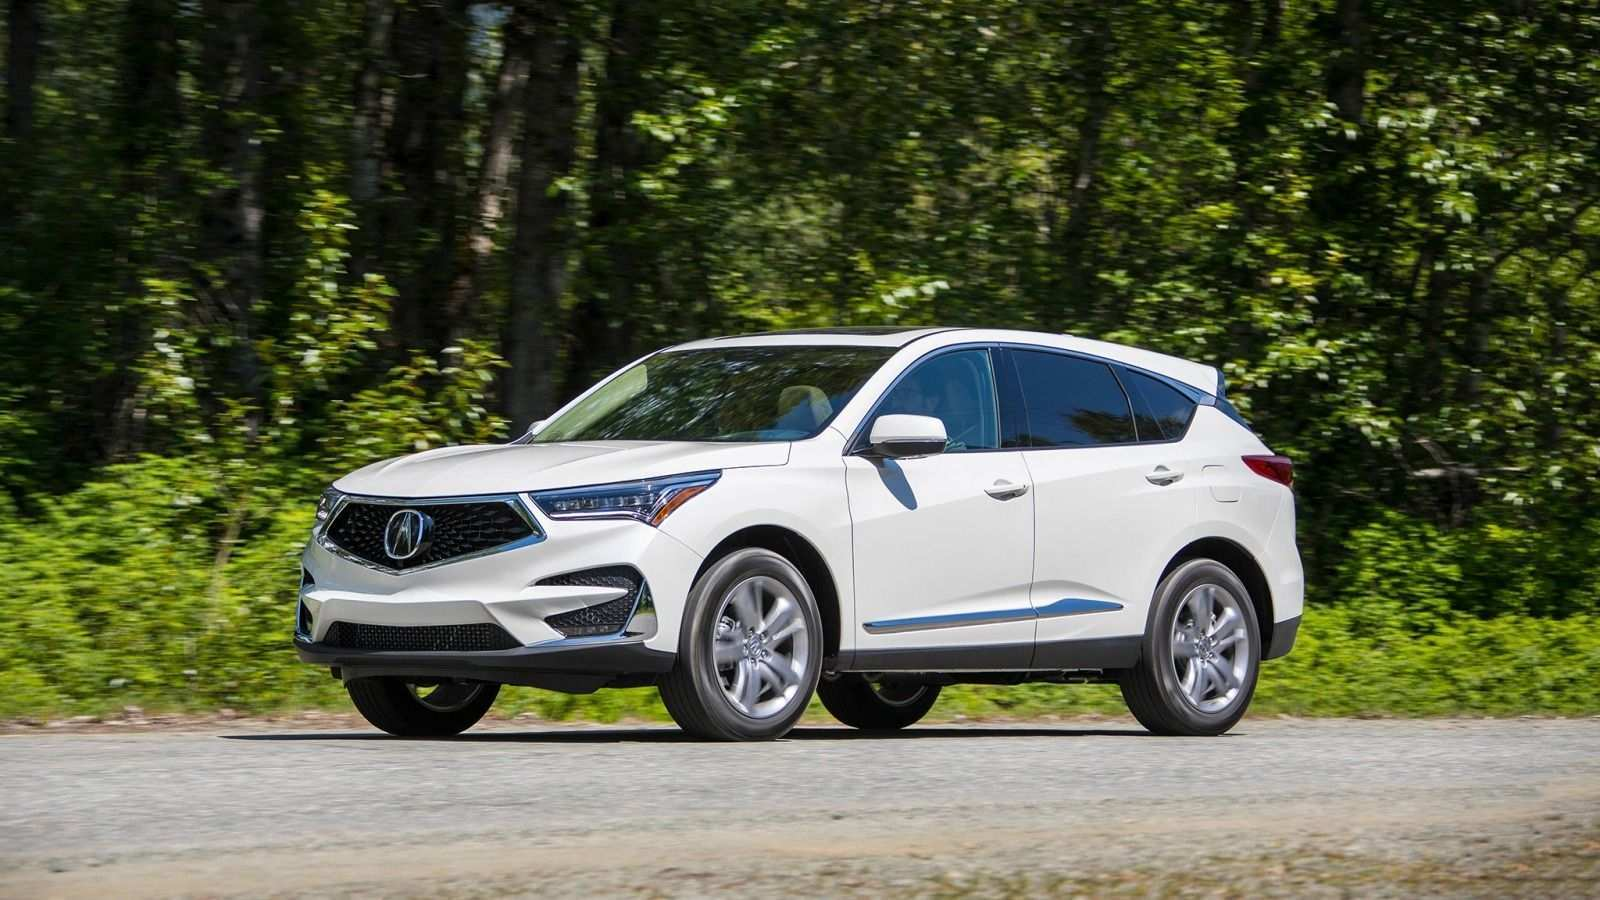 98 New New Acura 2019 Zdx First Drive Price Performance And Review New Review for New Acura 2019 Zdx First Drive Price Performance And Review